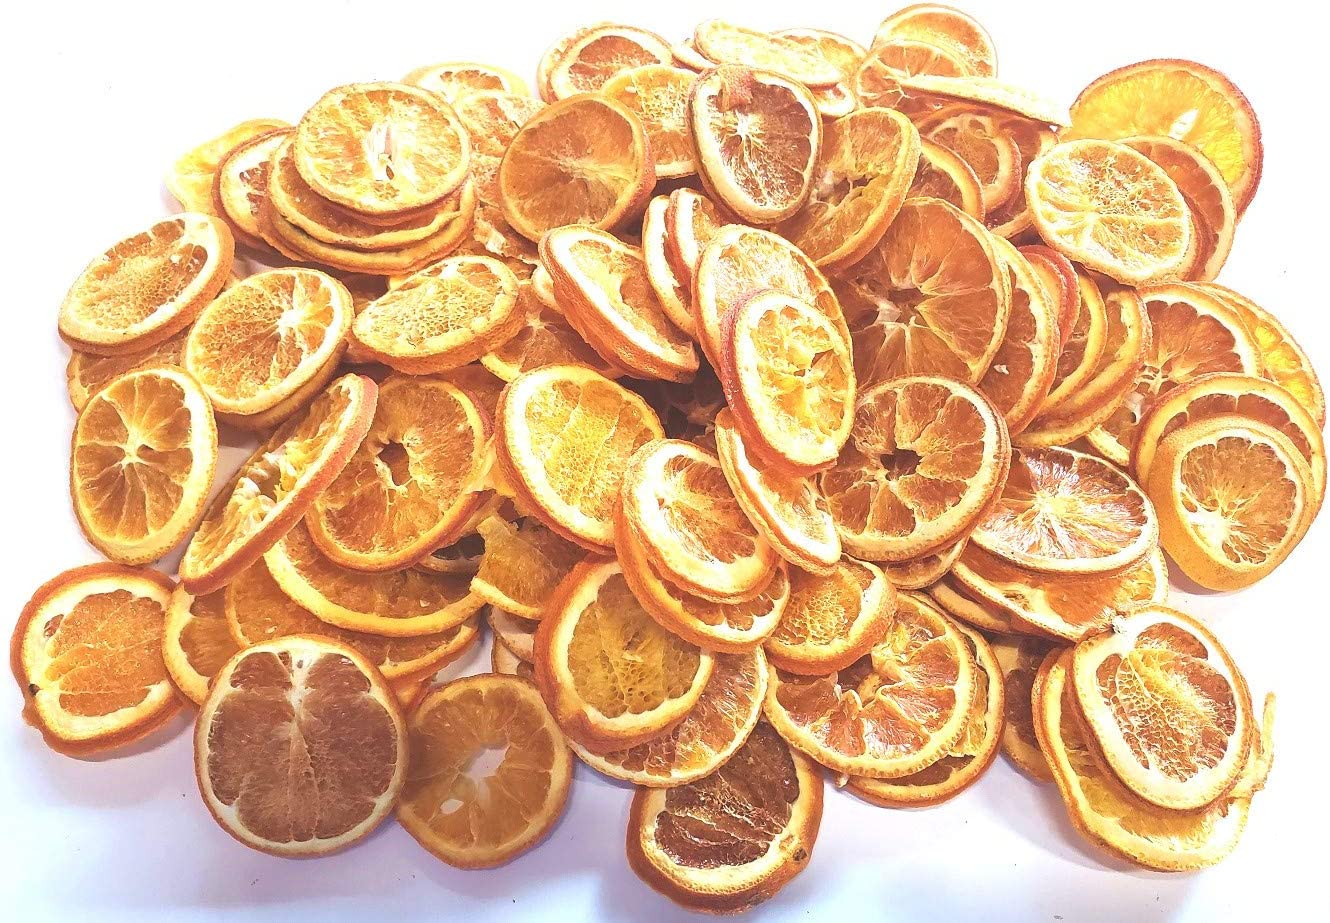 AM Trader Large 1LB Bag of Dried Orange Slices - Perfect for Potpourri Or Table Scatters - Not for Human Consumption